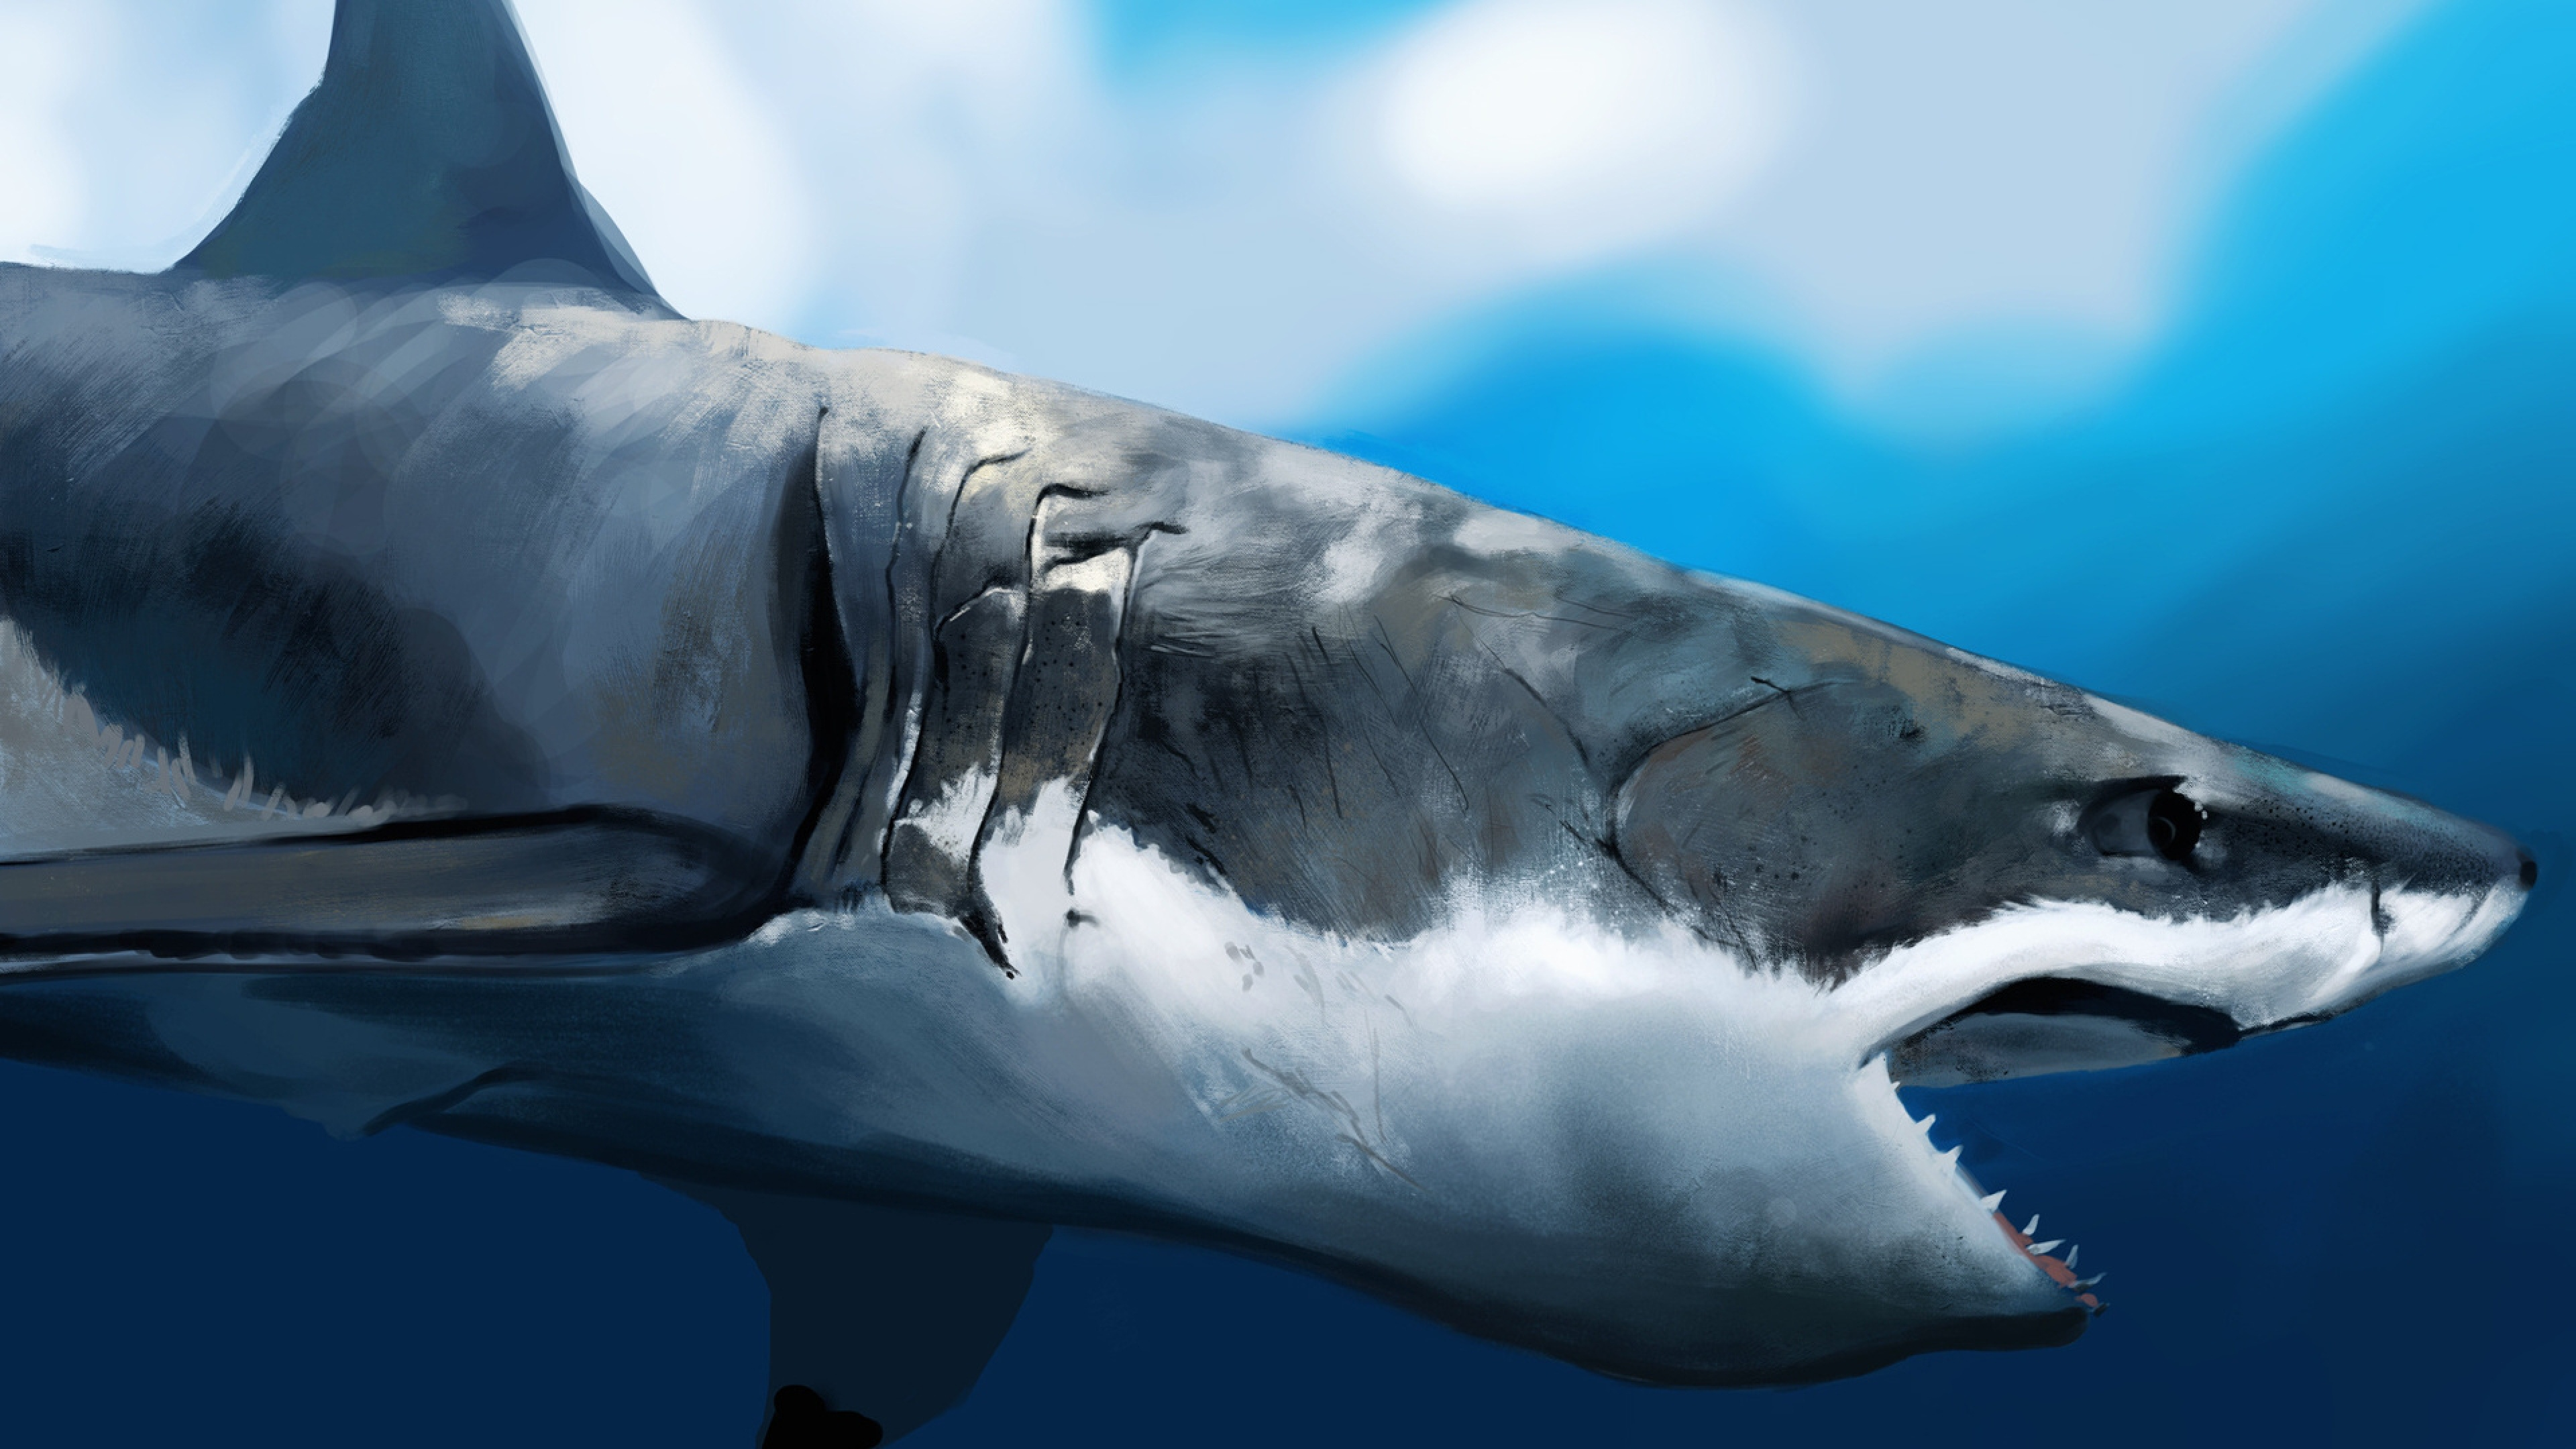 4K Shark Wallpapers High Quality | Download Free